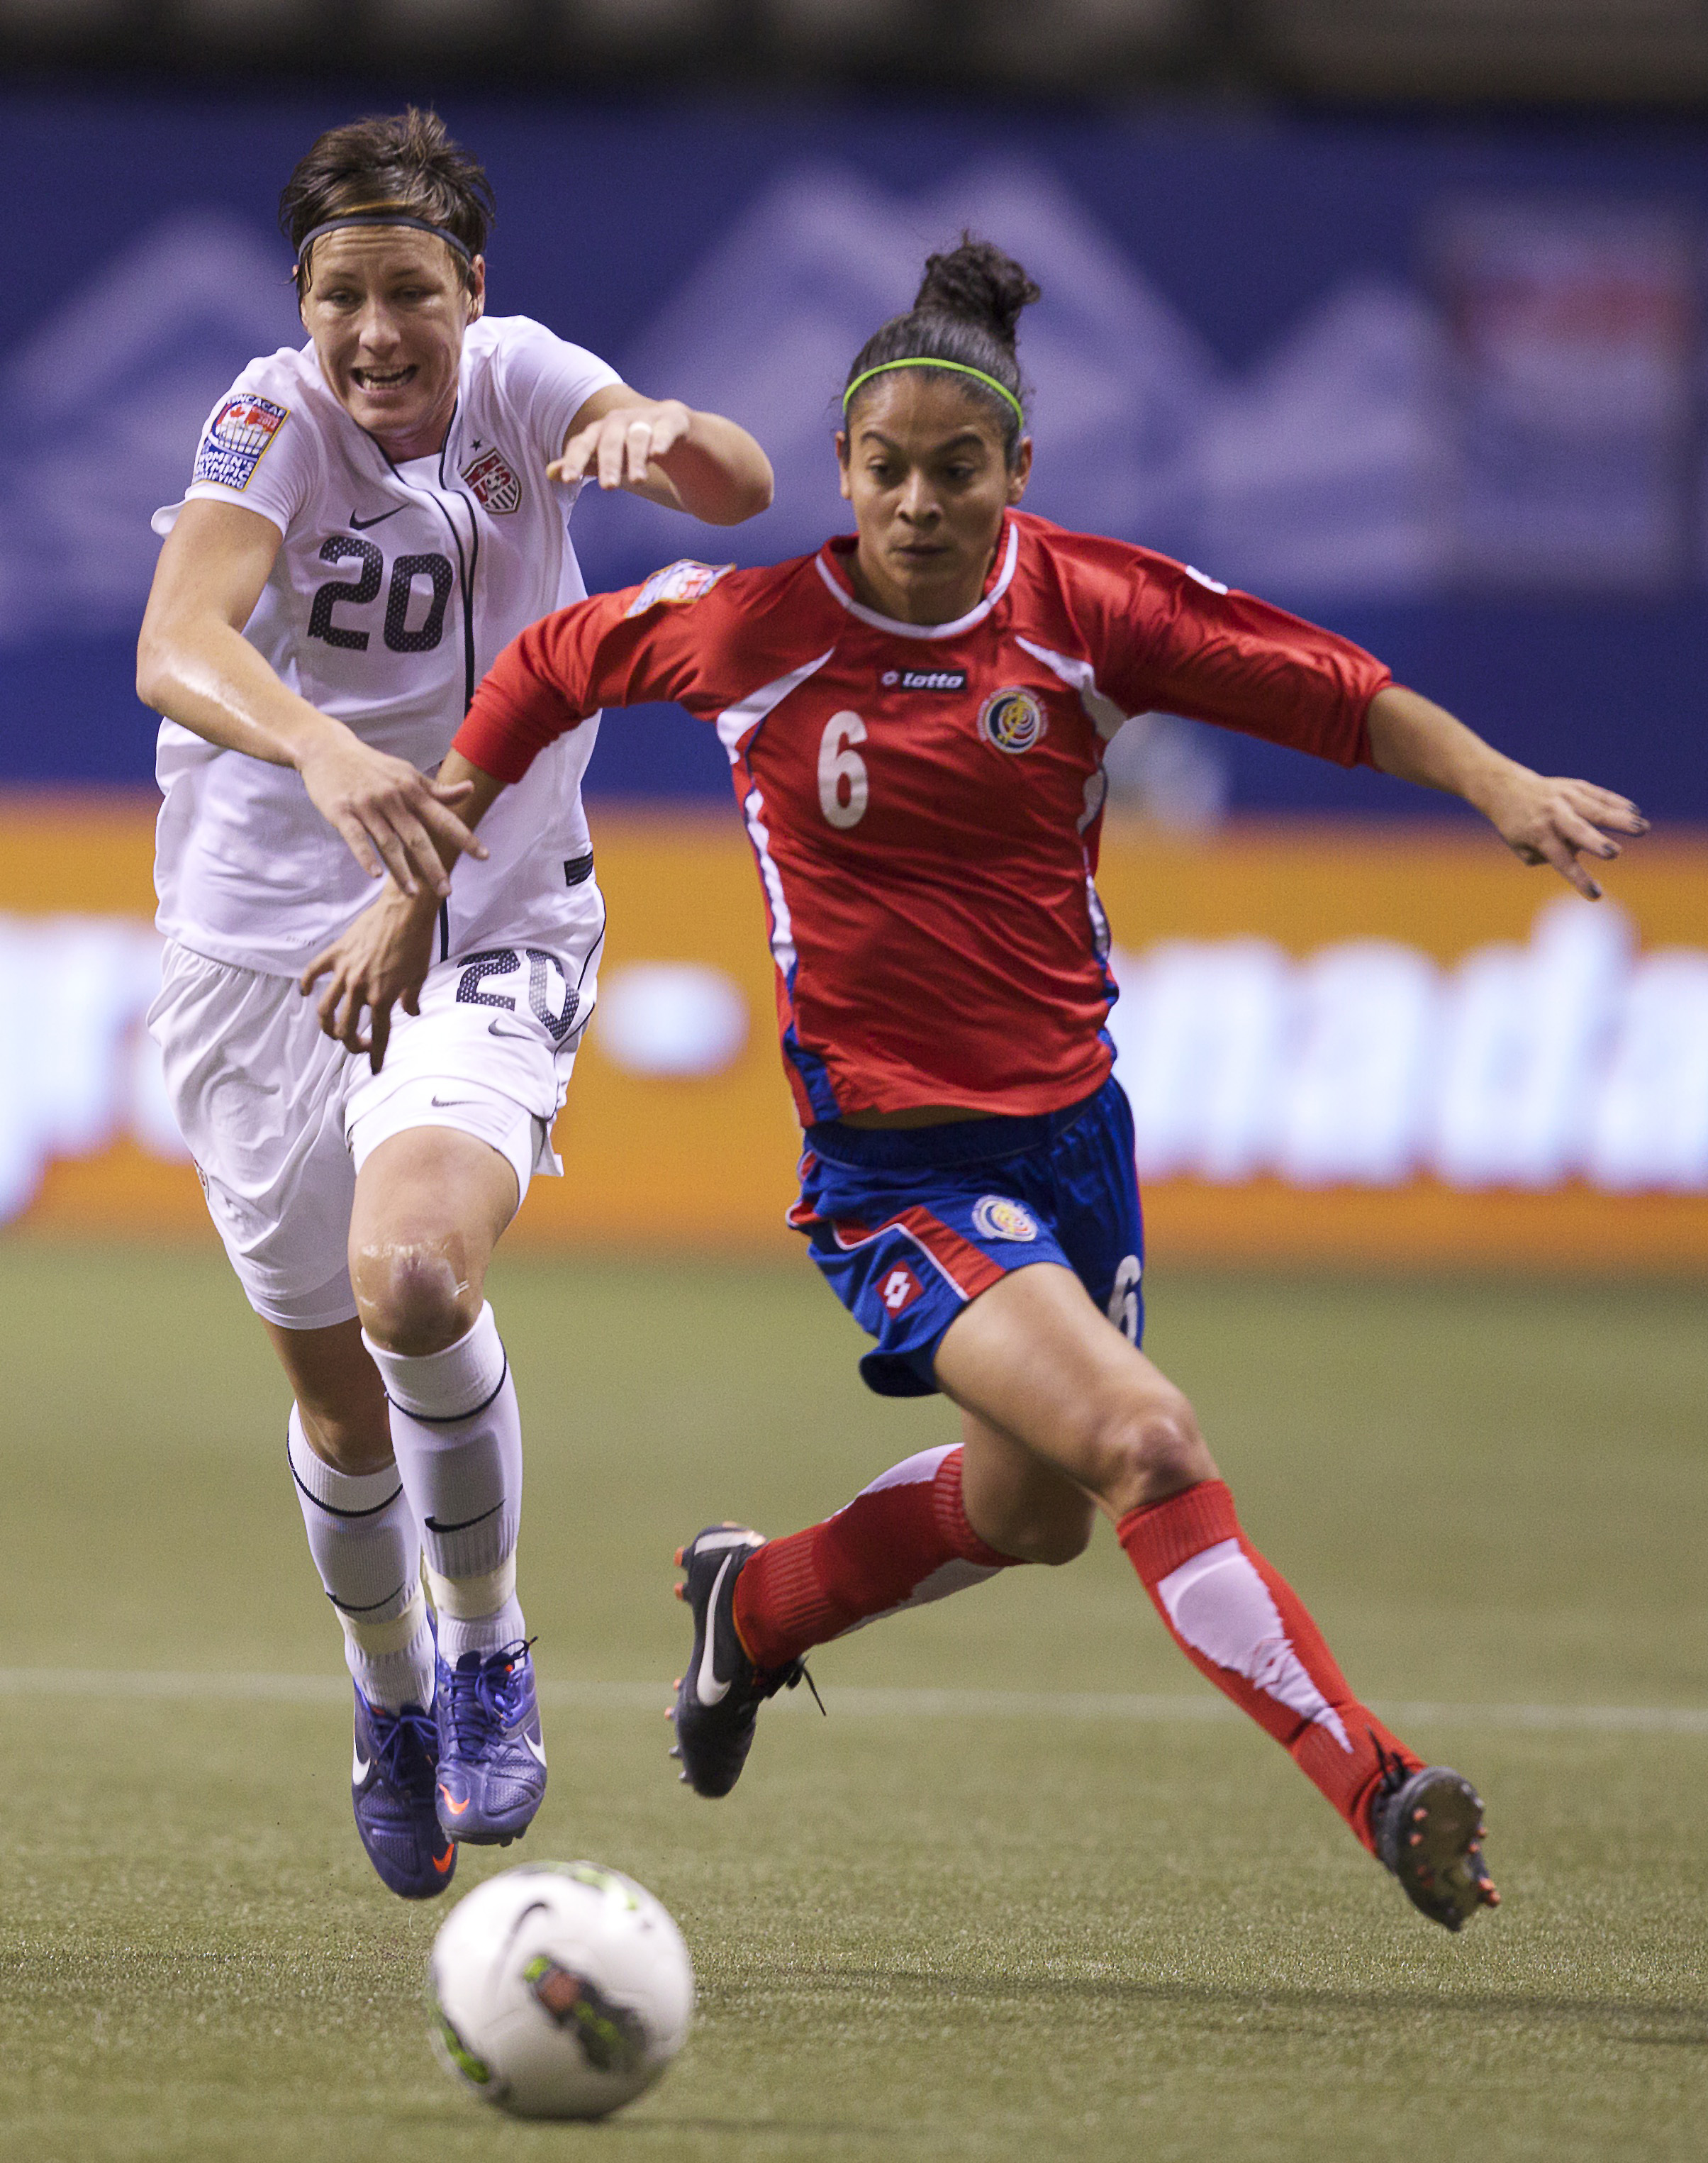 With her two goals against Canada in the CONCACAF finals, Abby Wambach moved into the no. 2 spot on the U.S. and world all-time scoring list, just behind women's soccer legend Mia Hamm.